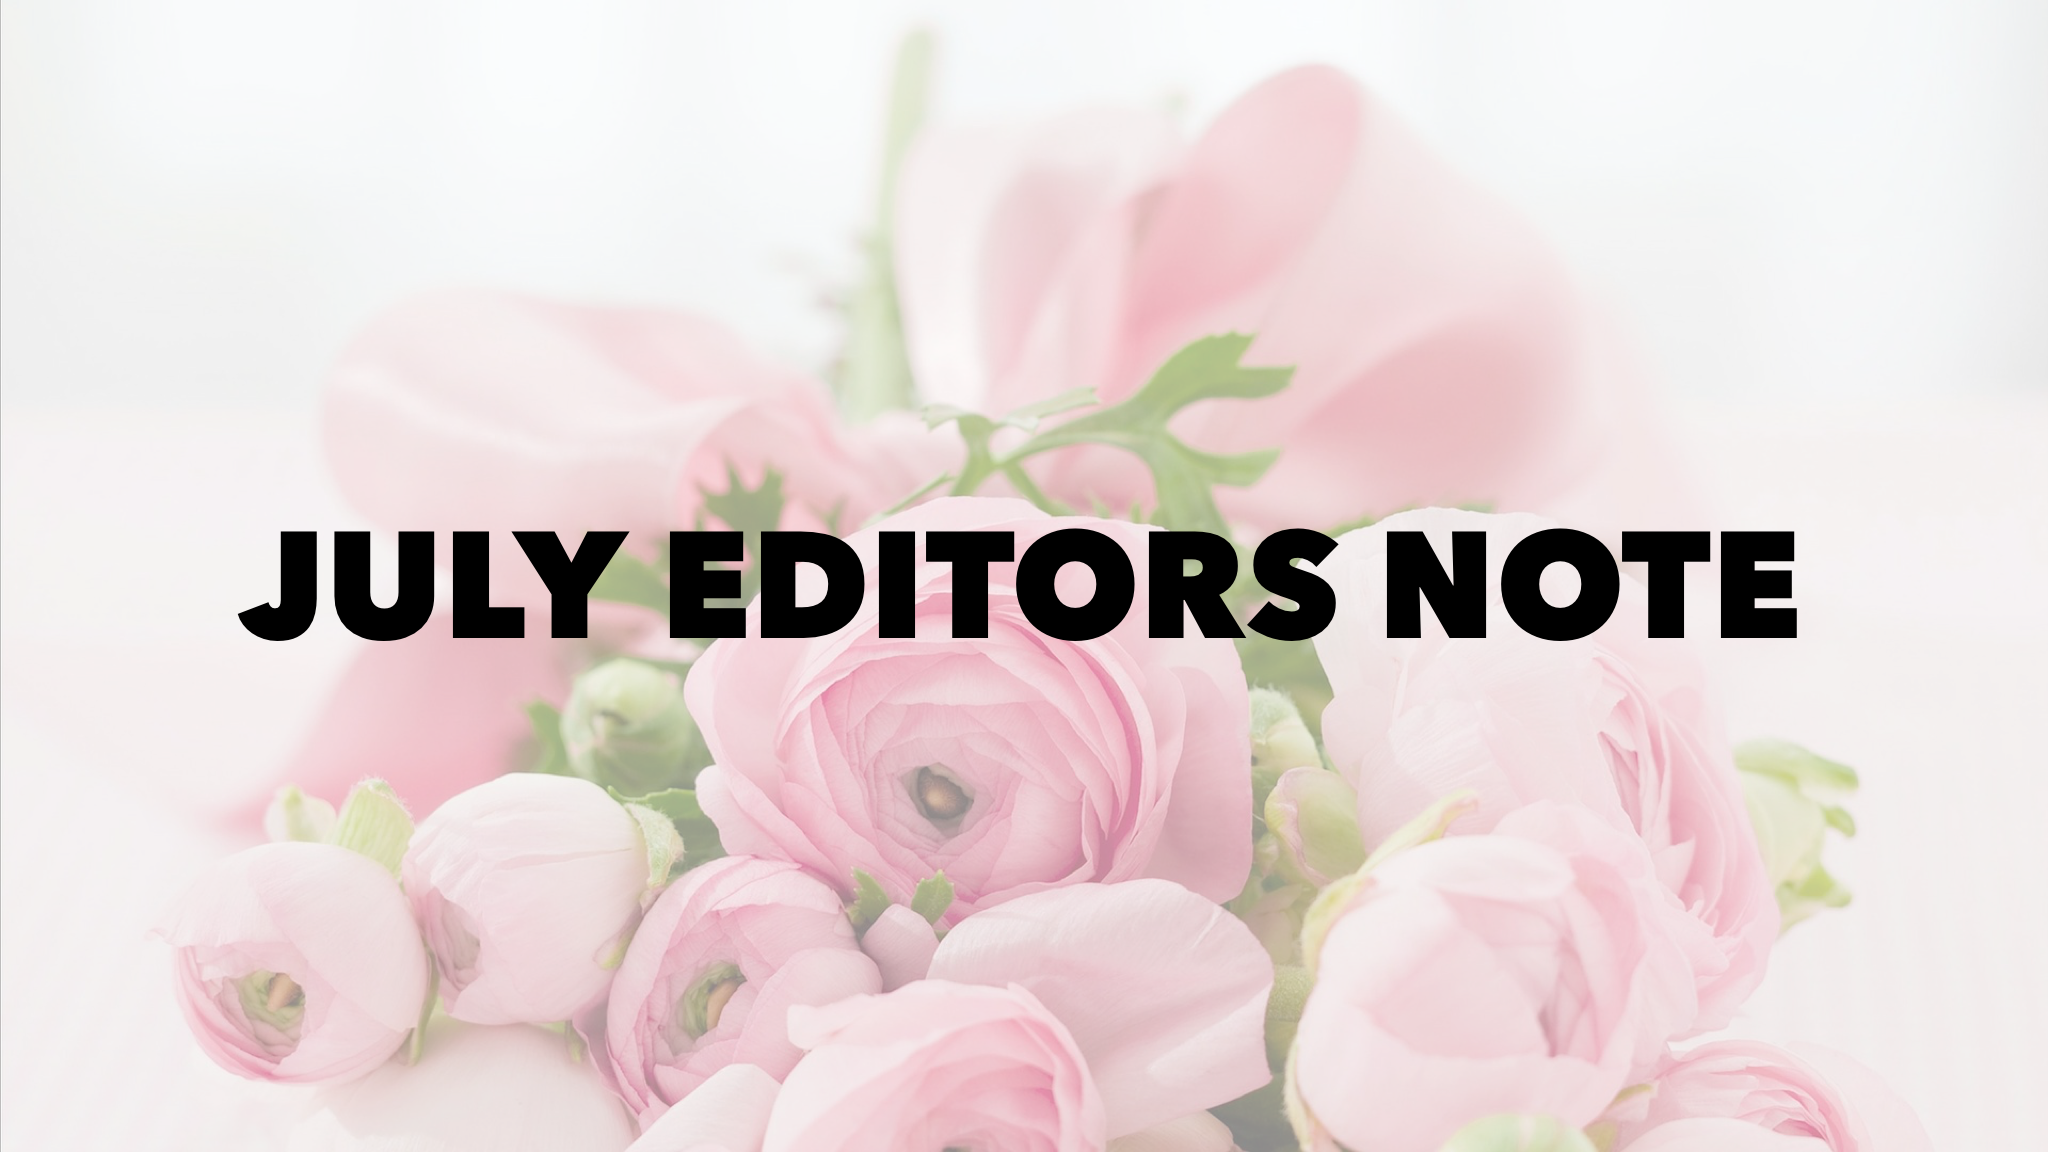 July Editor's Note